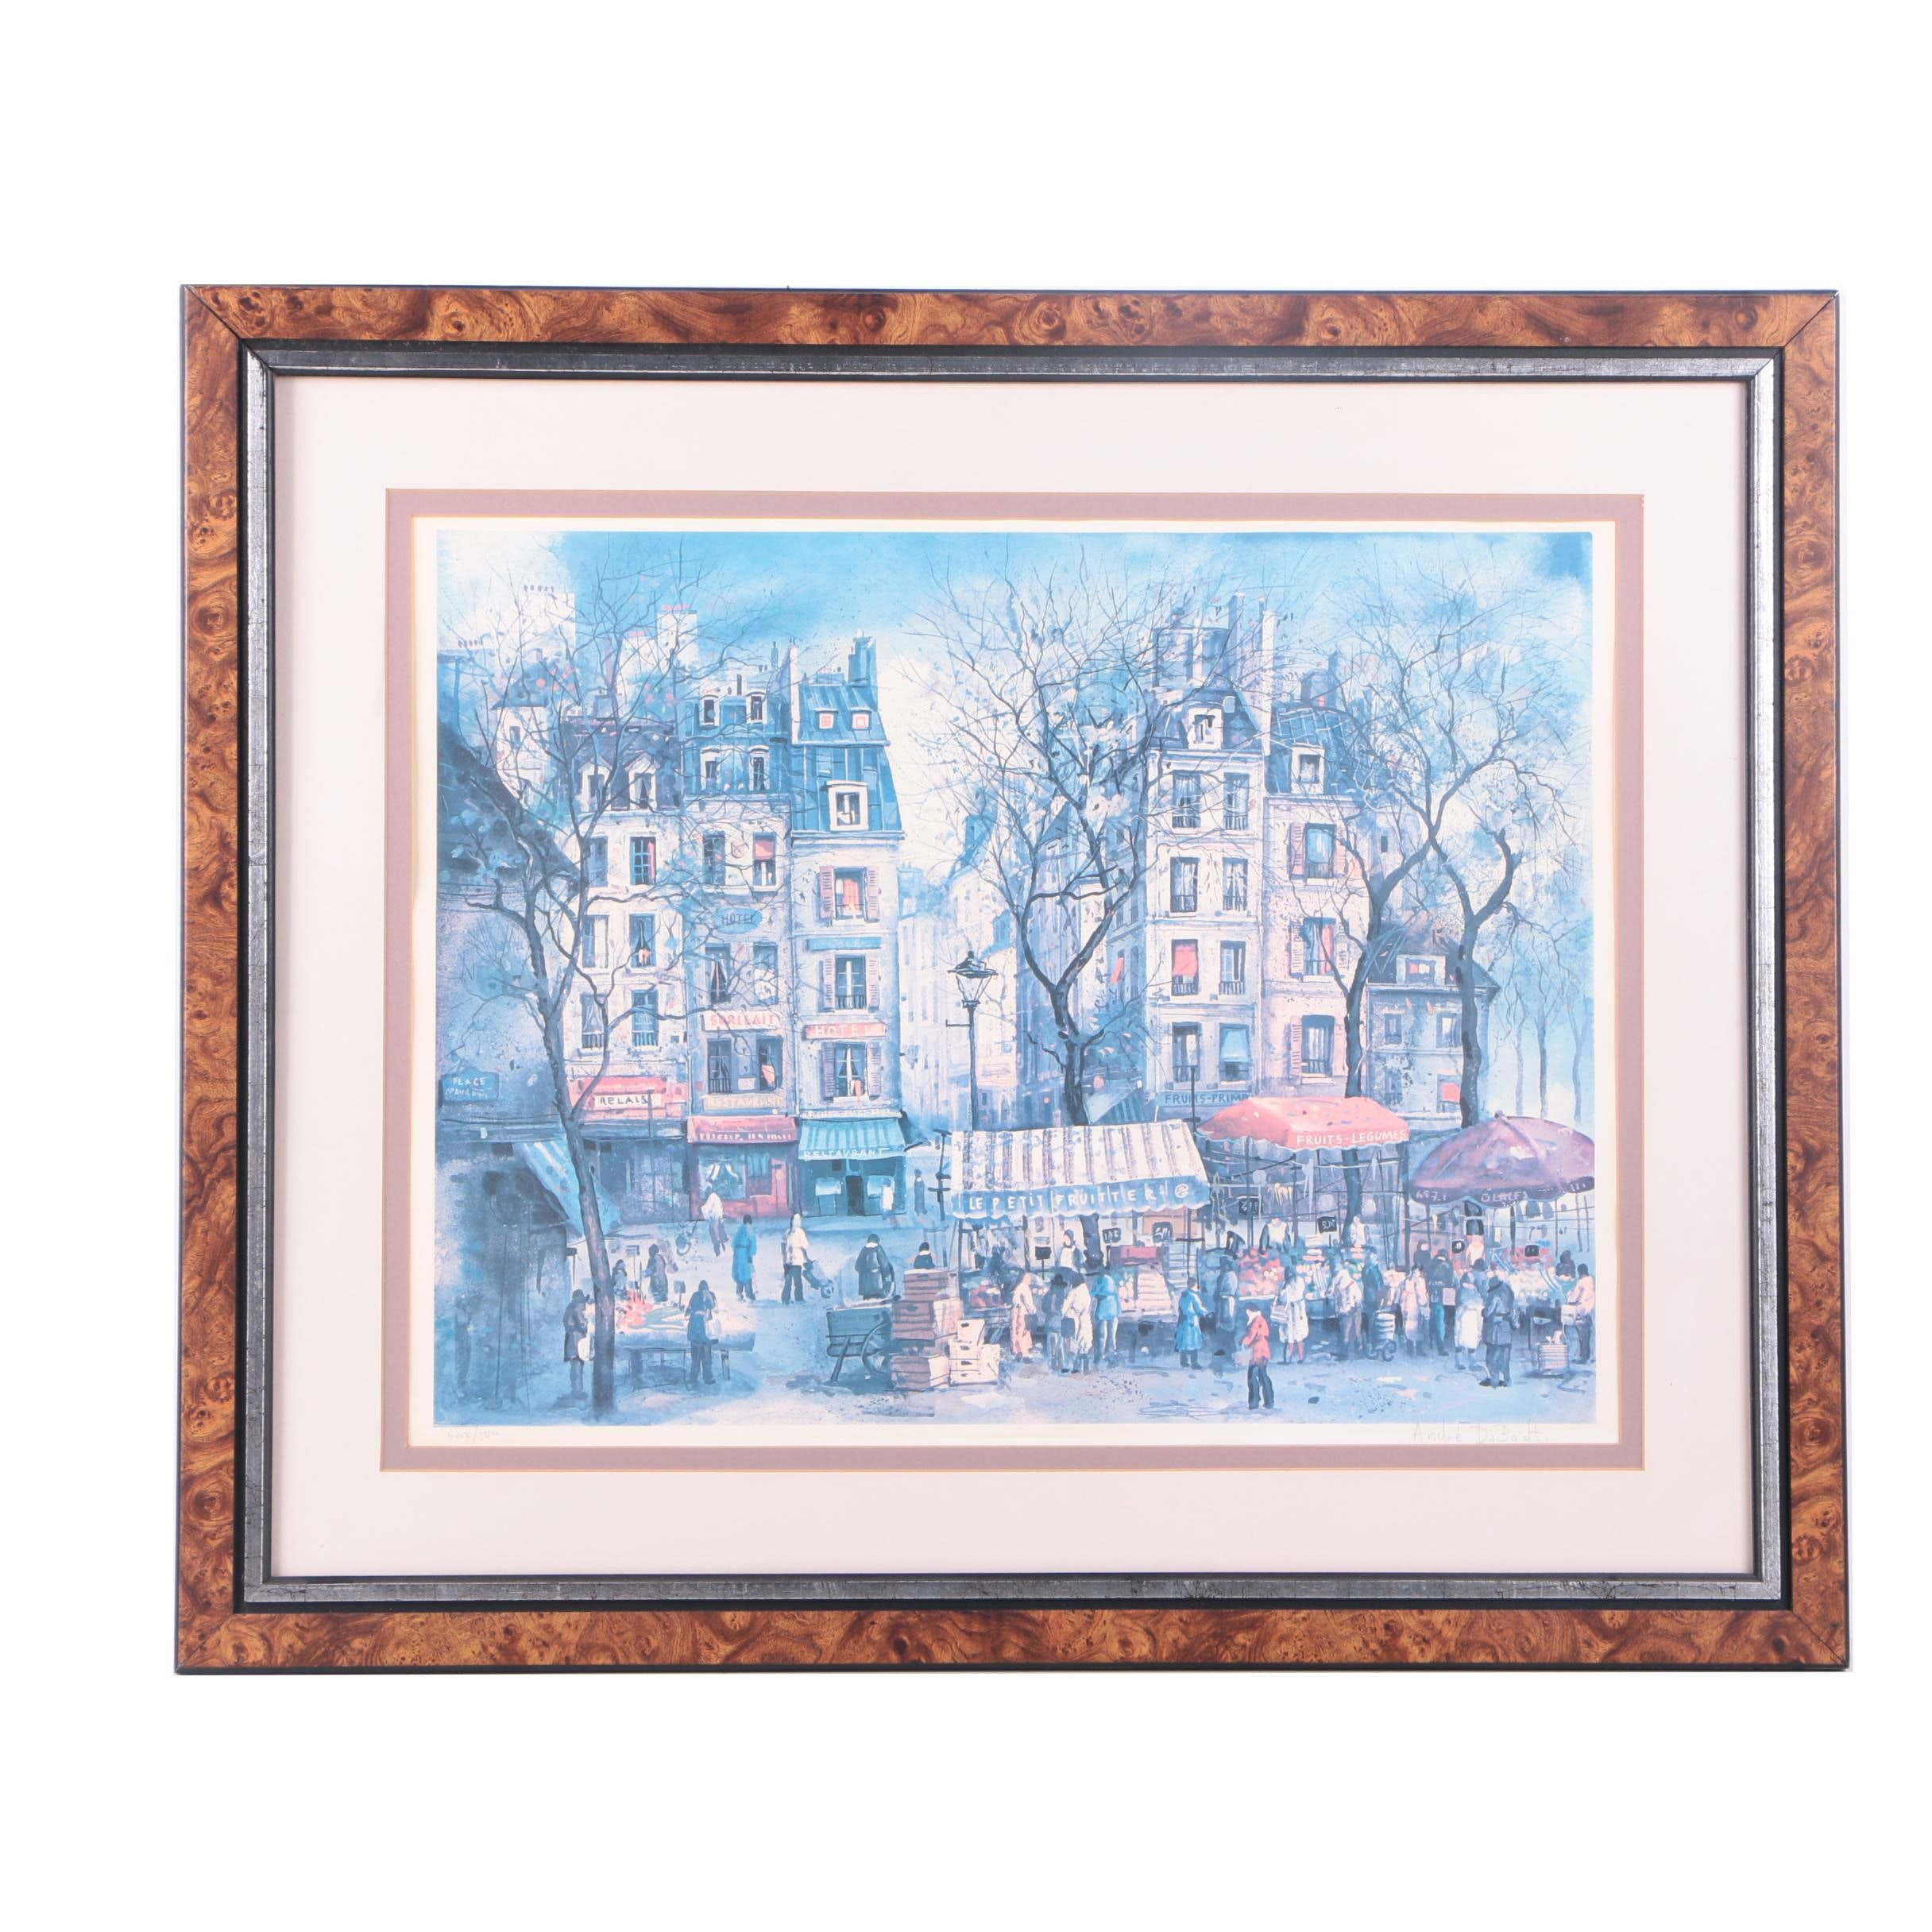 Andre DuBoidt Limited Edition Offset Lithograph of French Street Scene